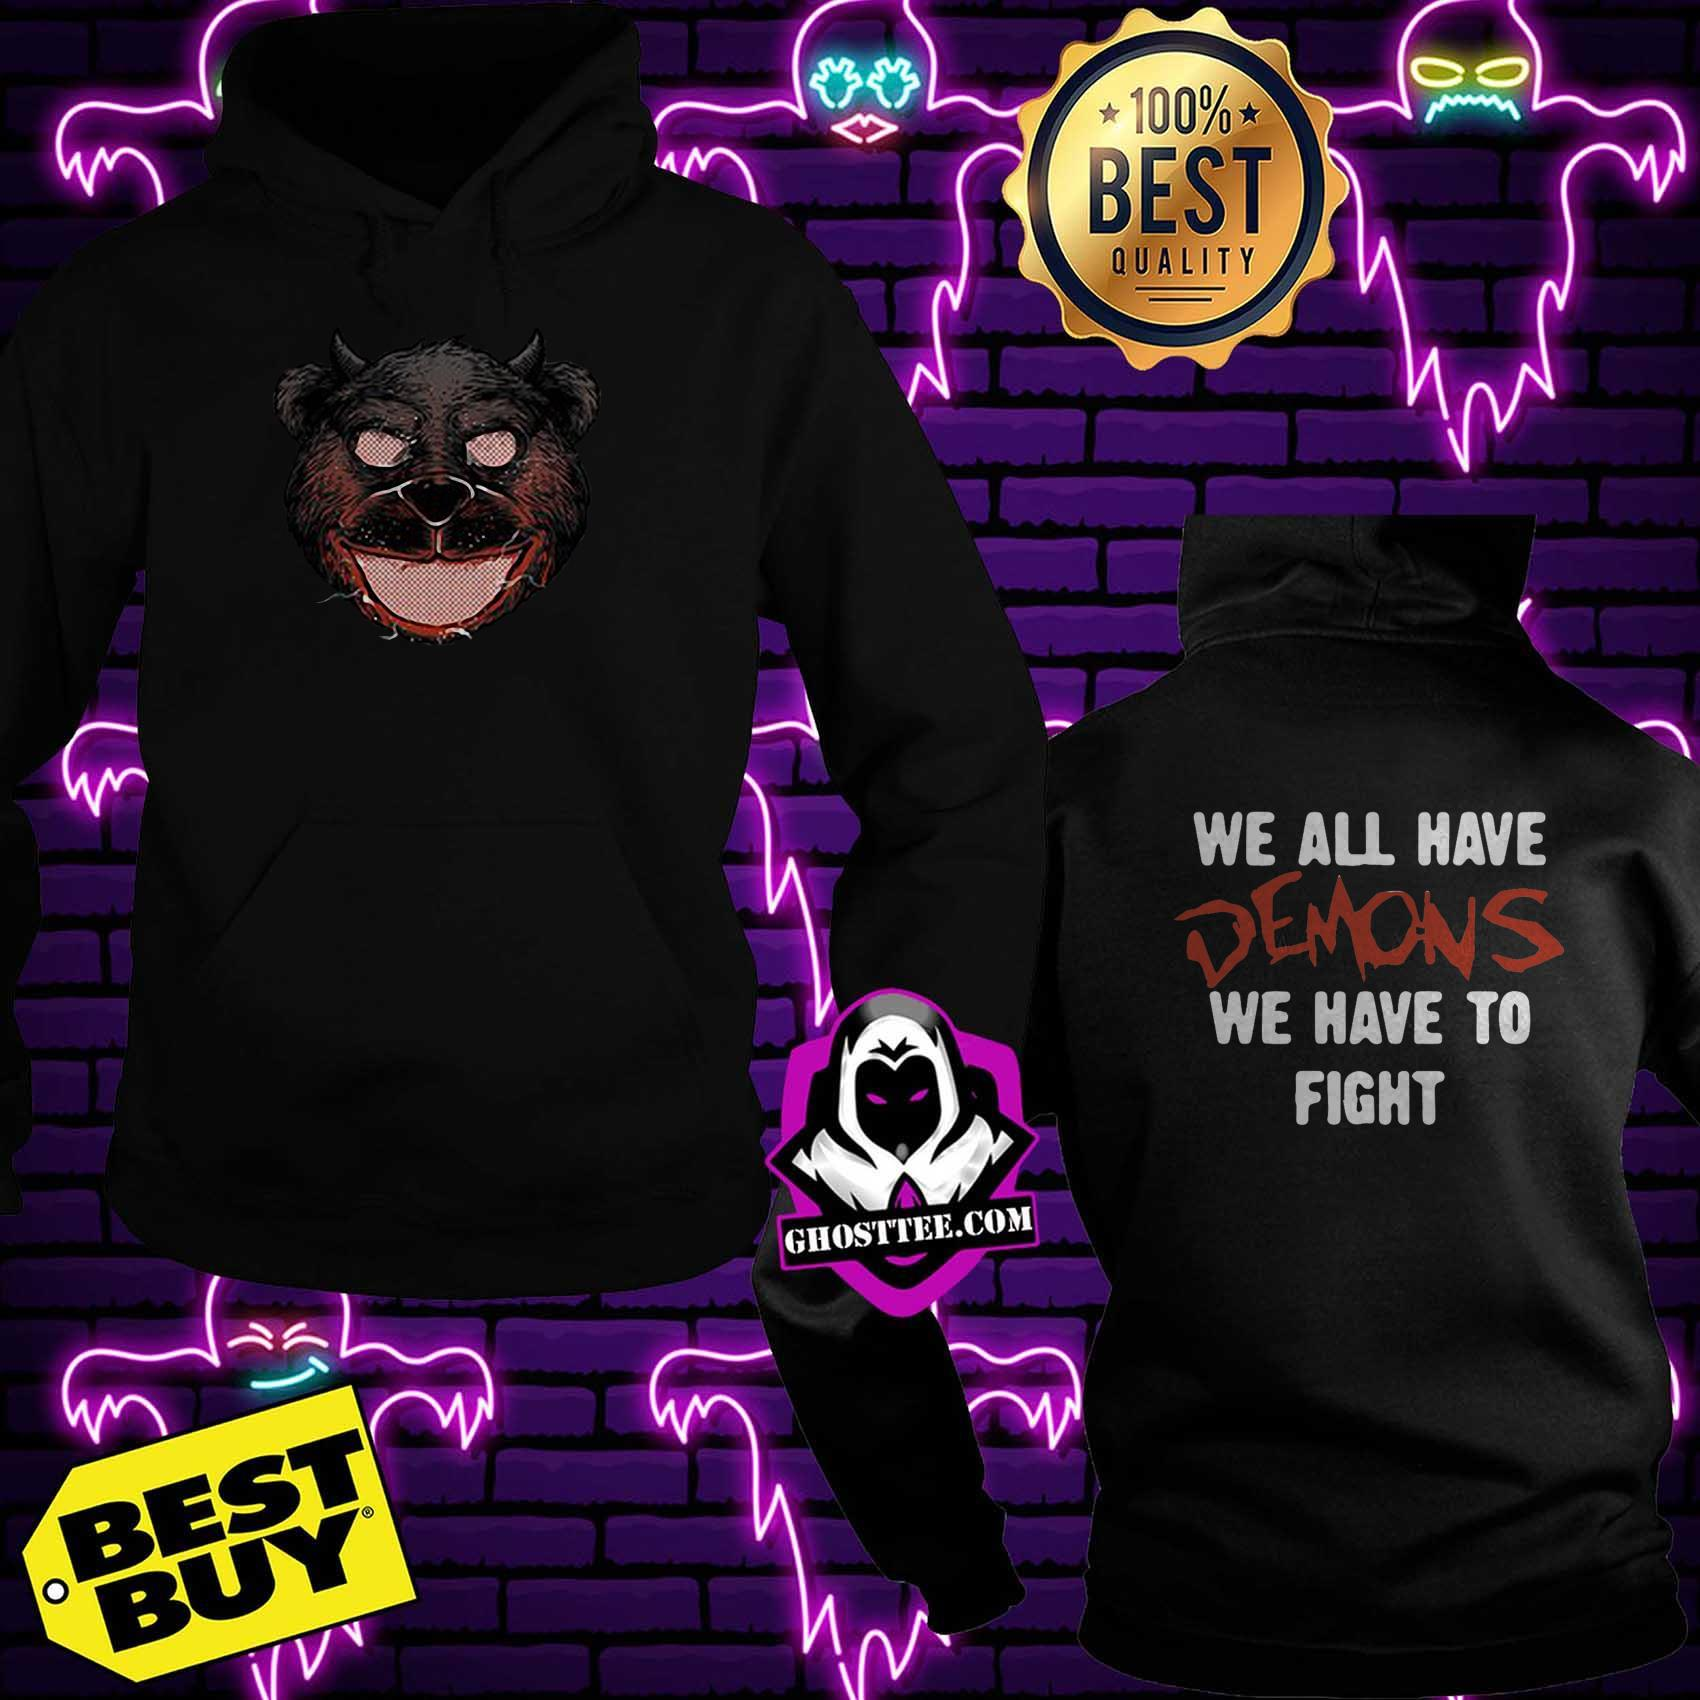 bear grillz we all have demons we have to fight hoodie - Bear Grillz we all have Demons we have to fight shirt